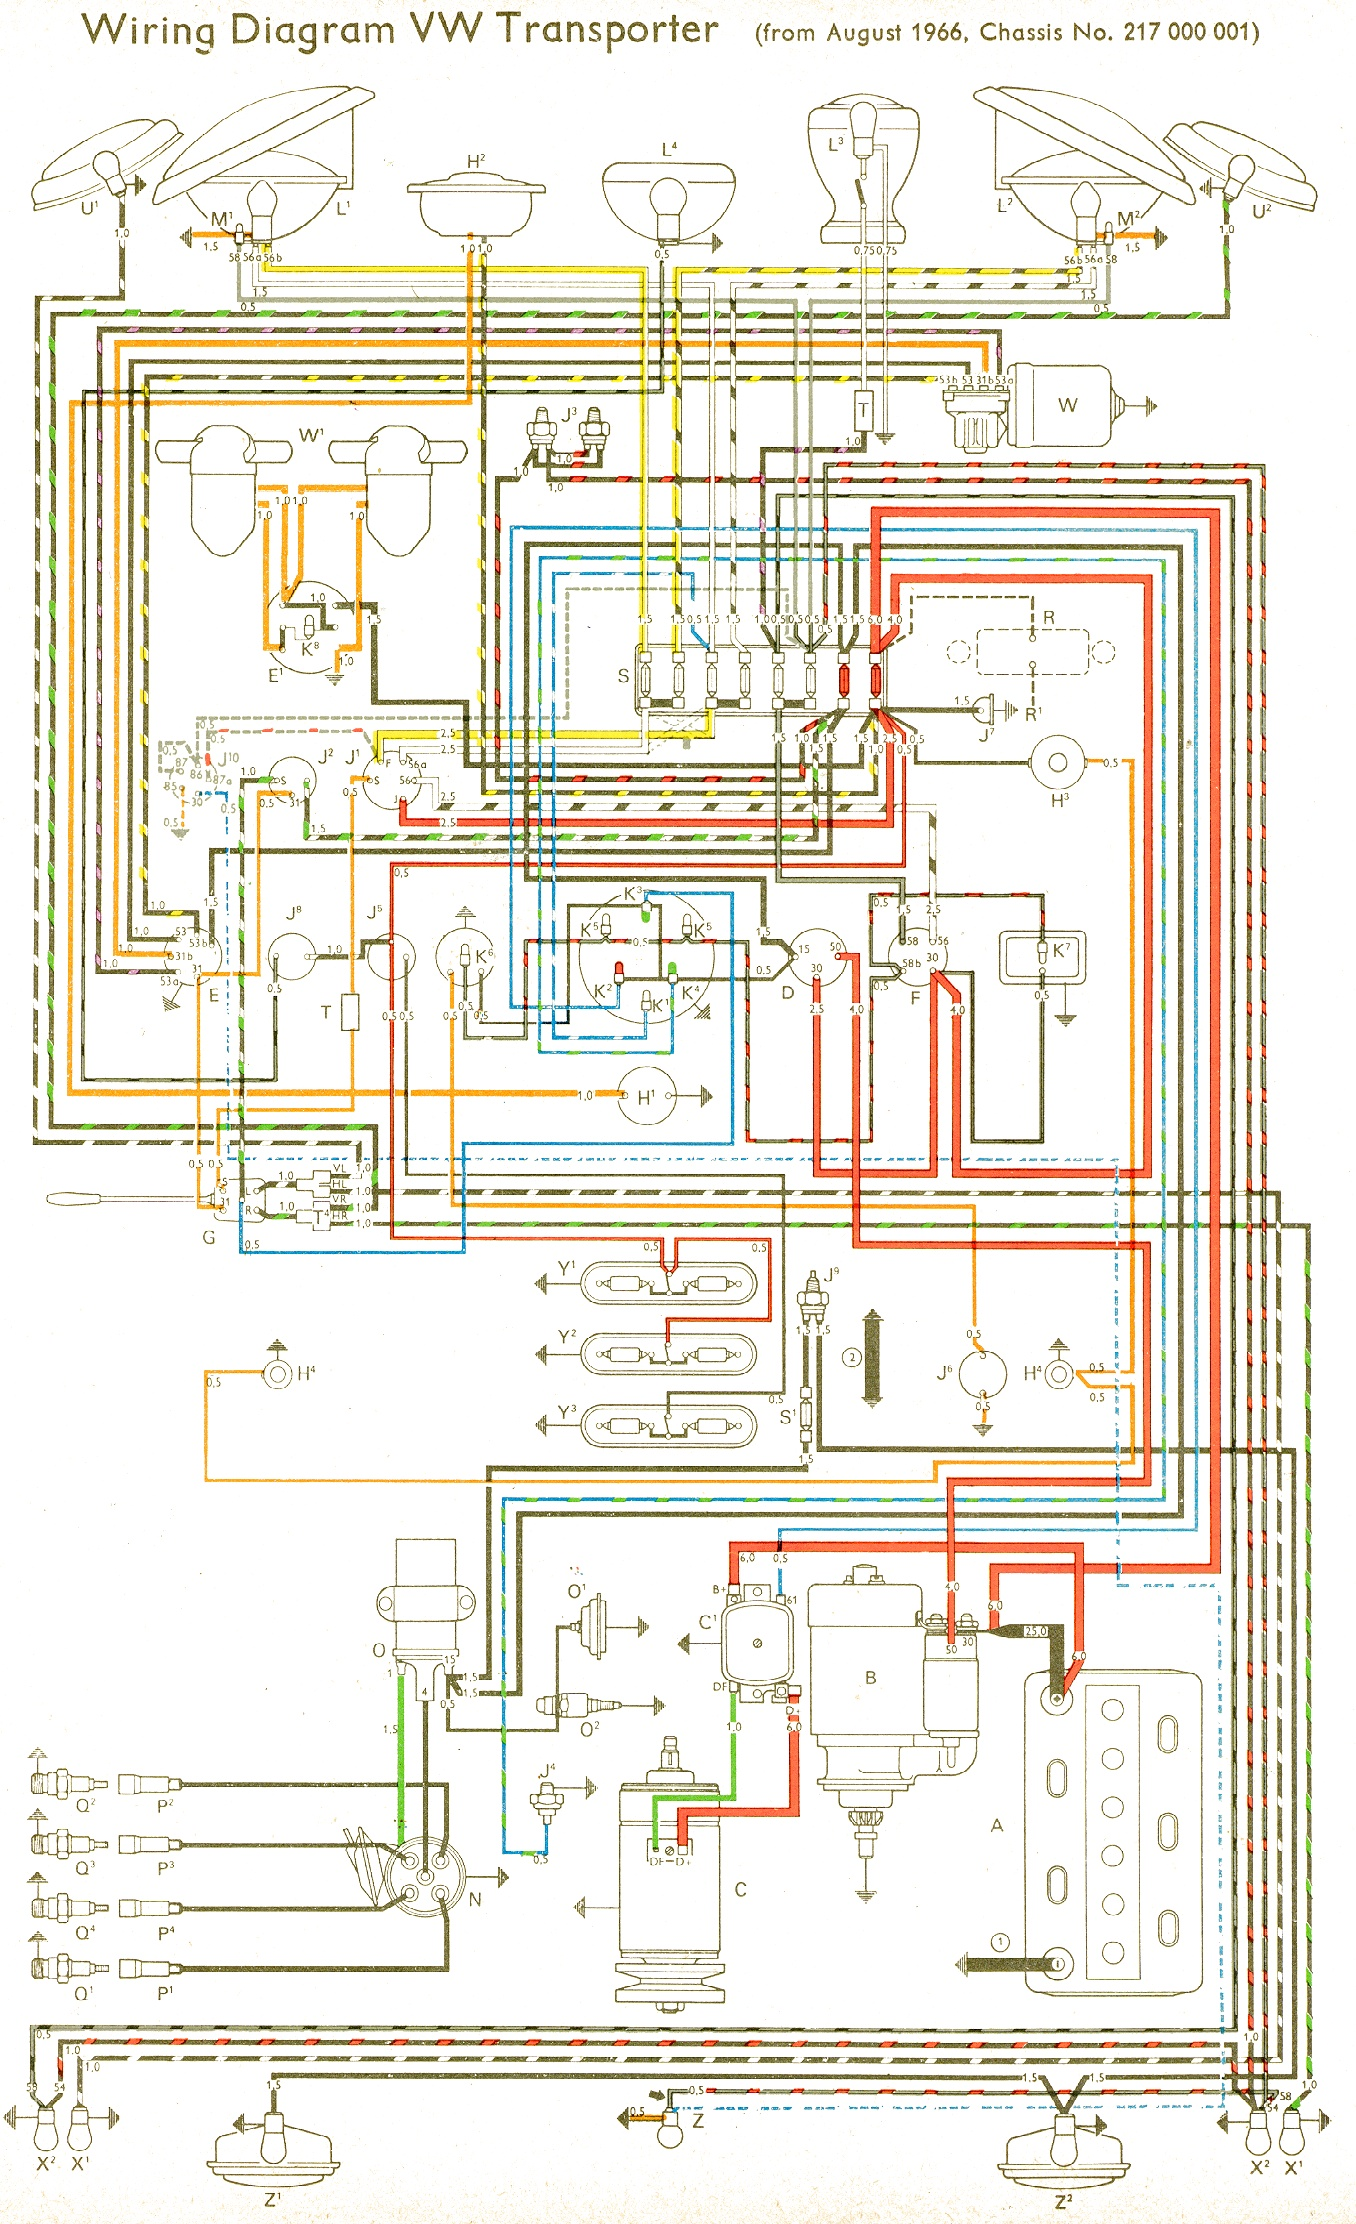 bus 66 vw wiring diagrams 1970 vw beetle wiring diagram at panicattacktreatment.co